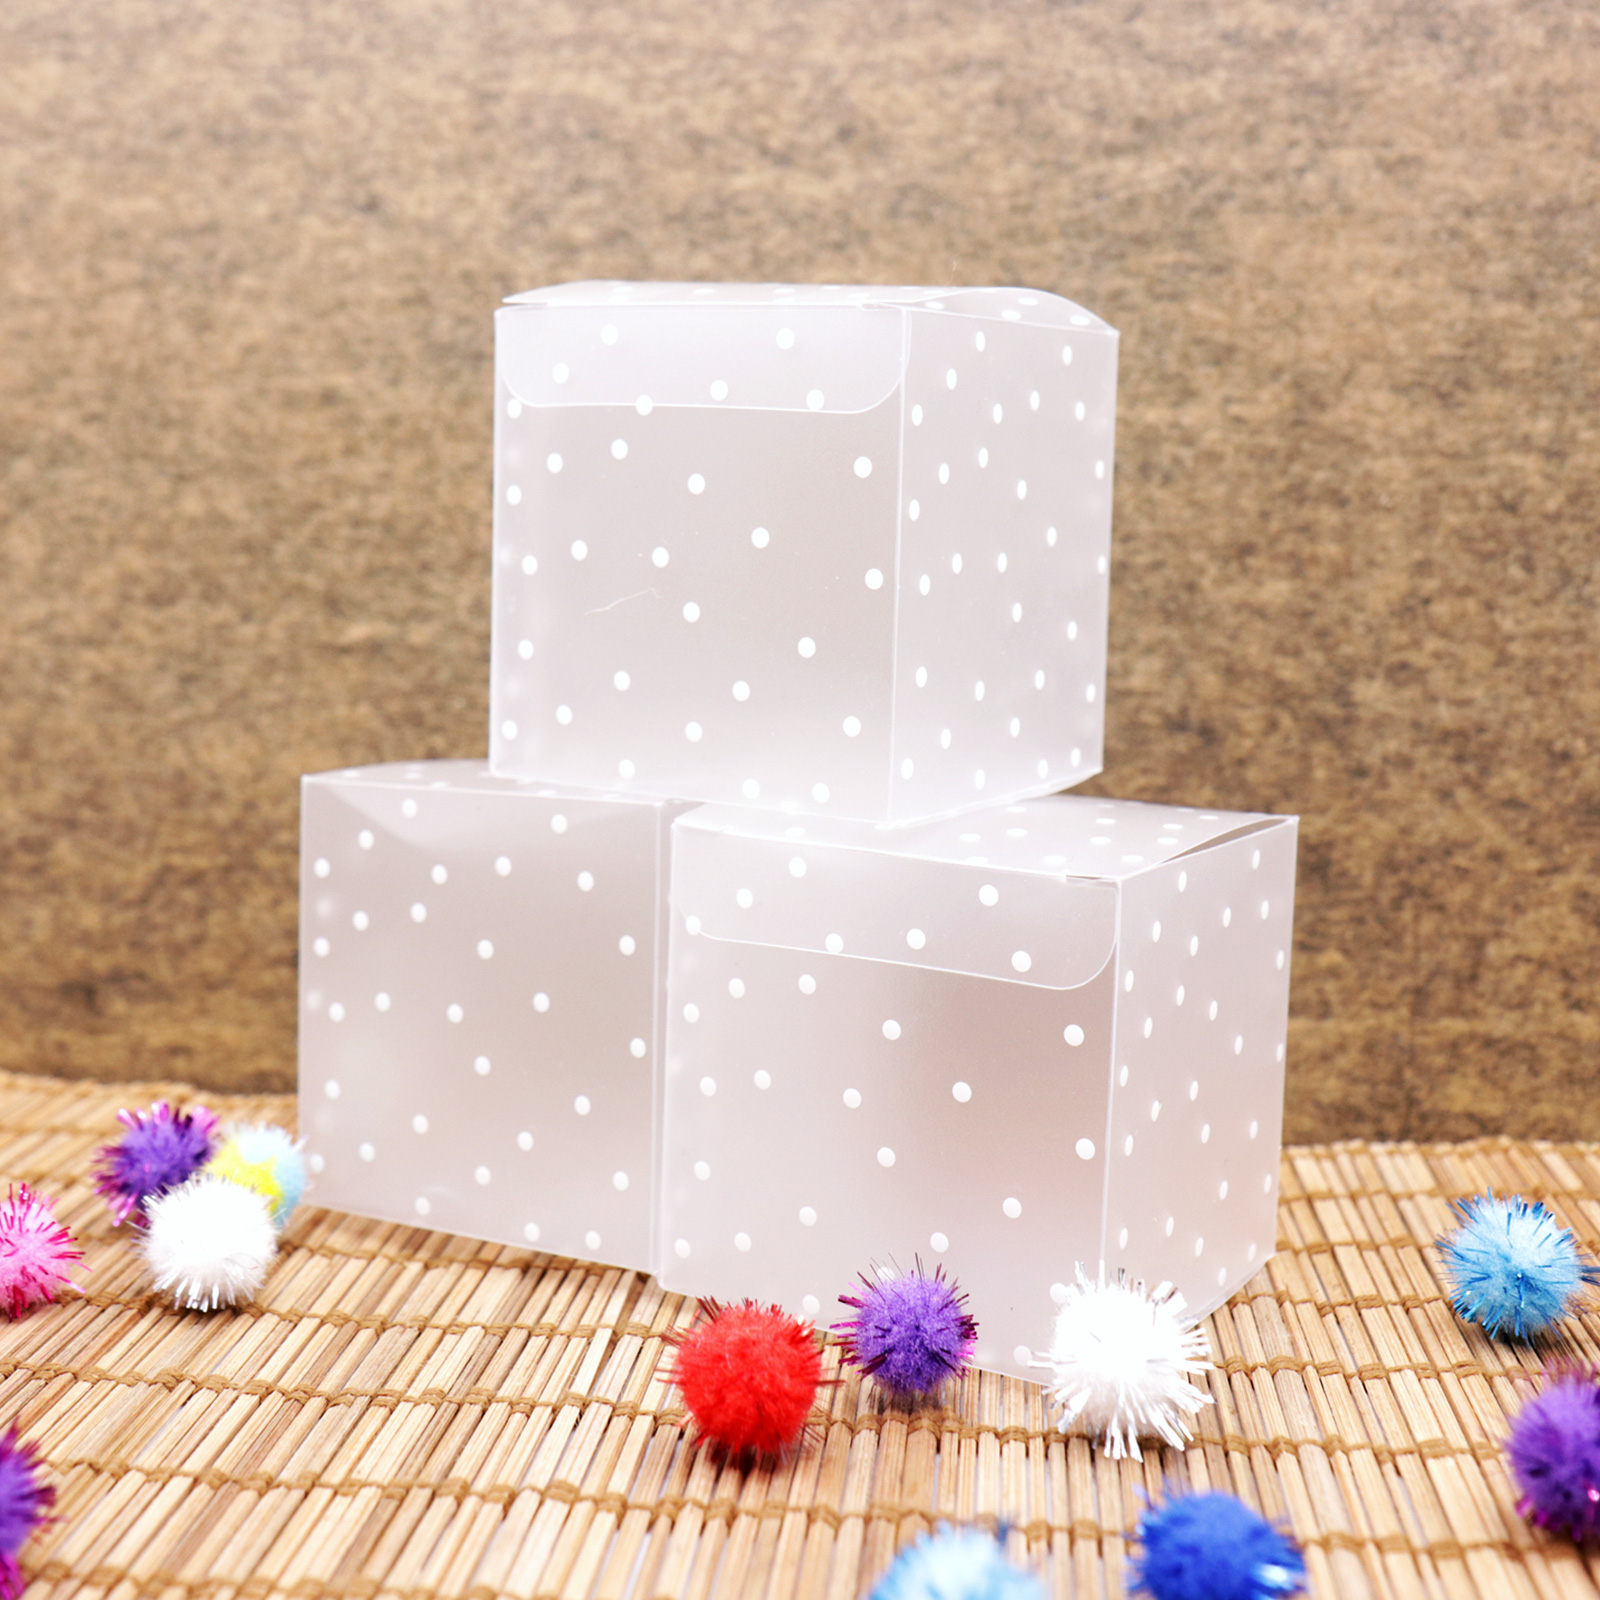 10pcs PVC Square Transparent Clear Dot Candy Box Chocolate Package Gift Box Cube For Wedding Birthday Christmas Party Decor